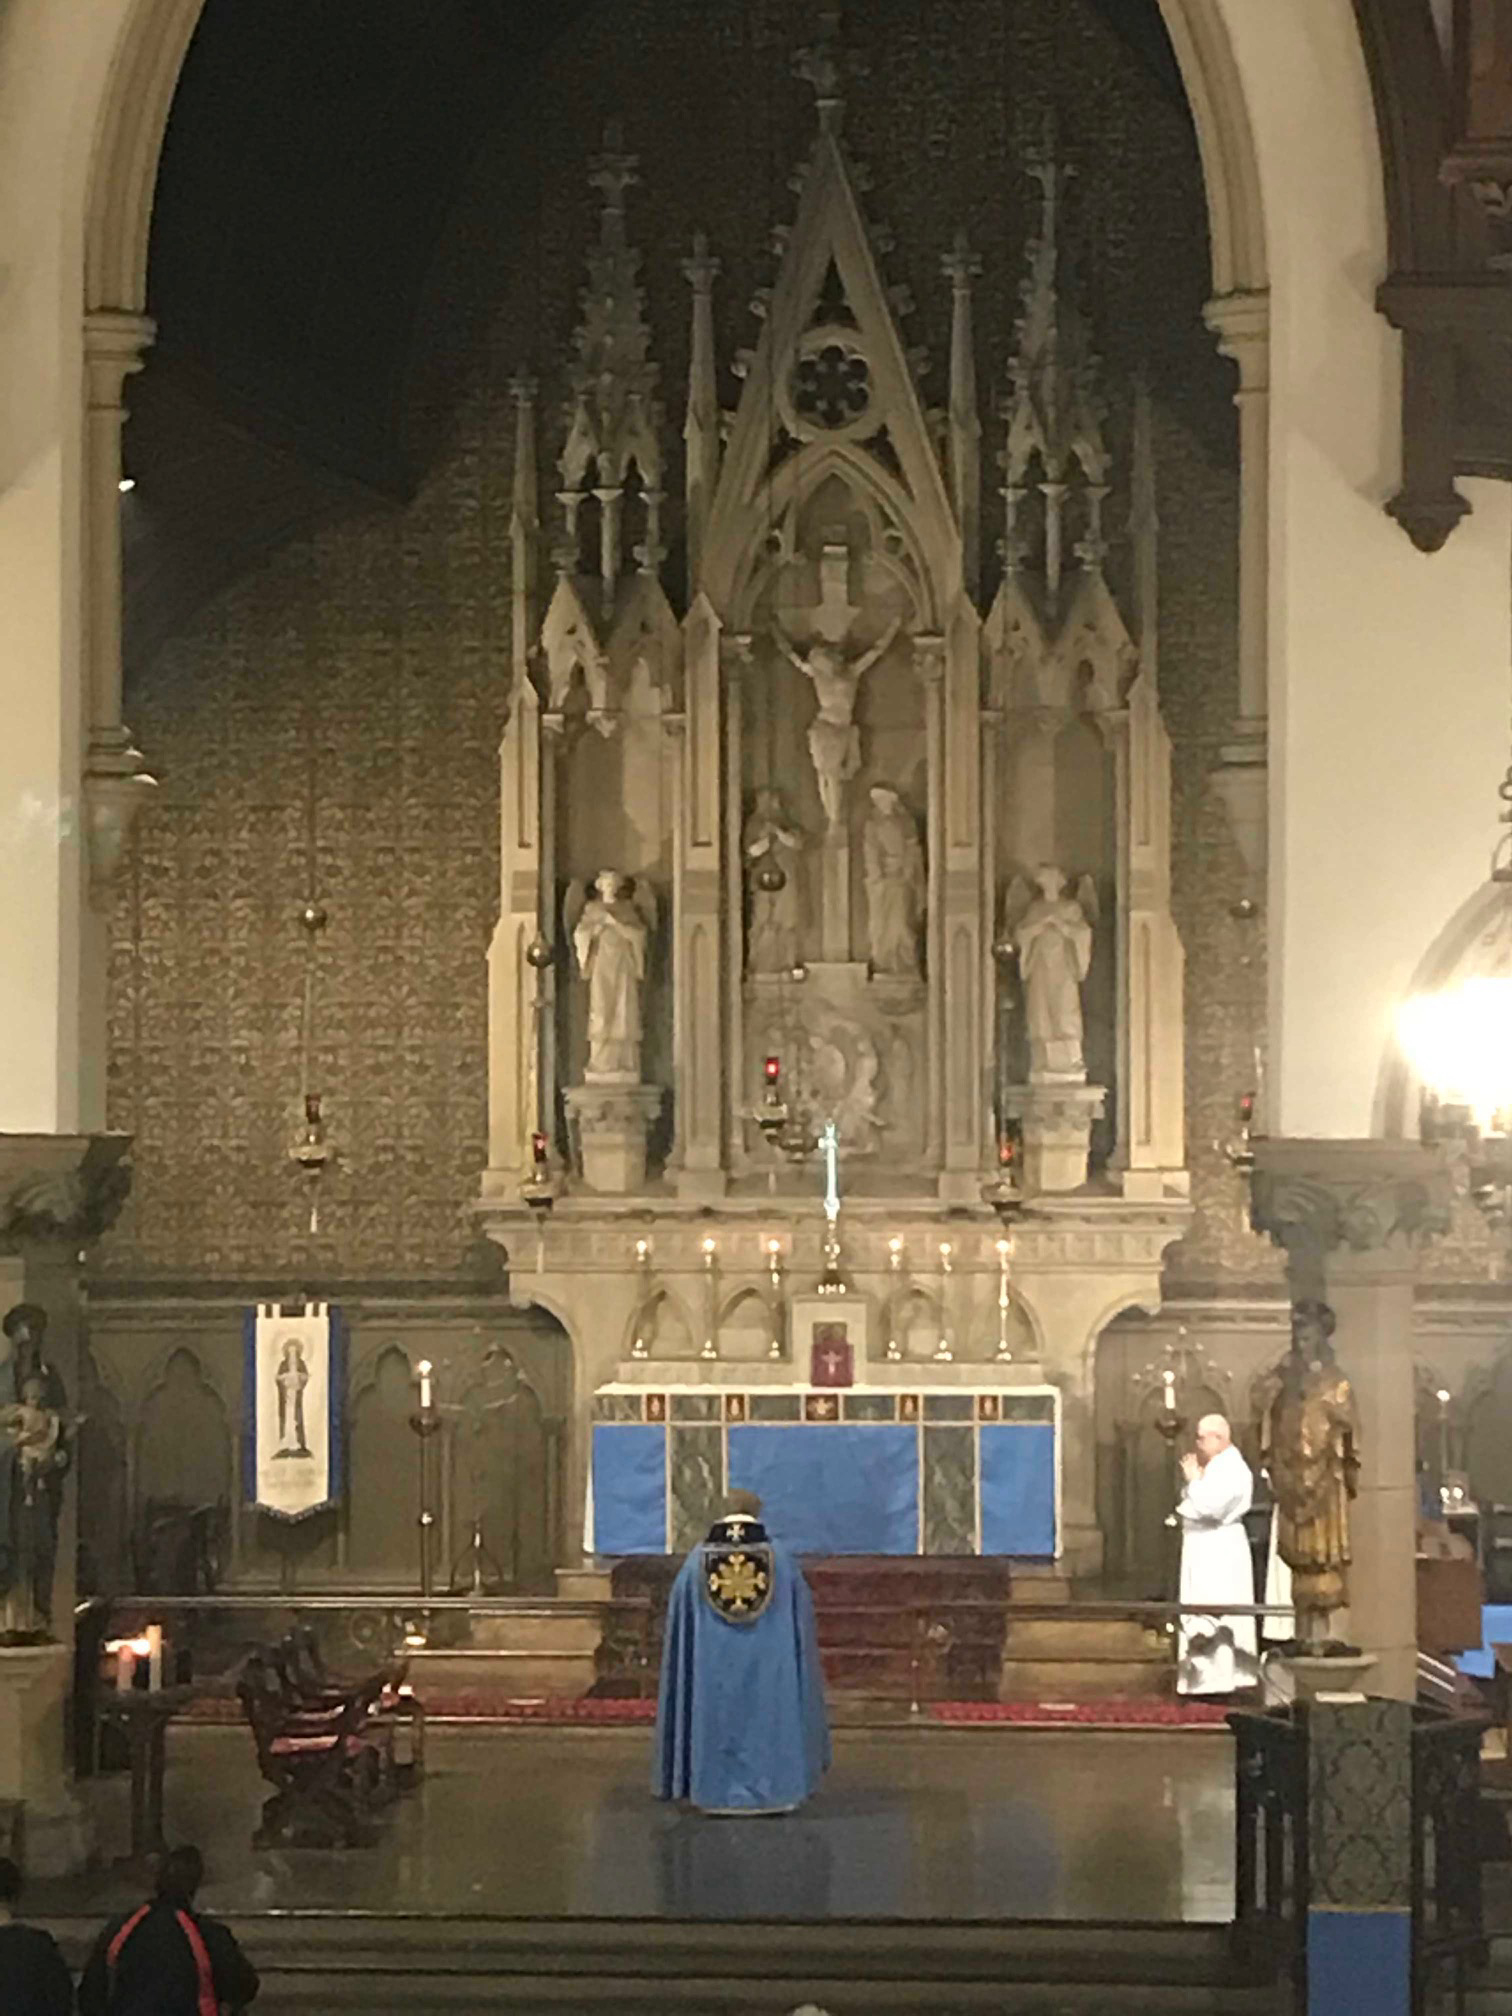 The chancel and carved stone reredos in Advent season.